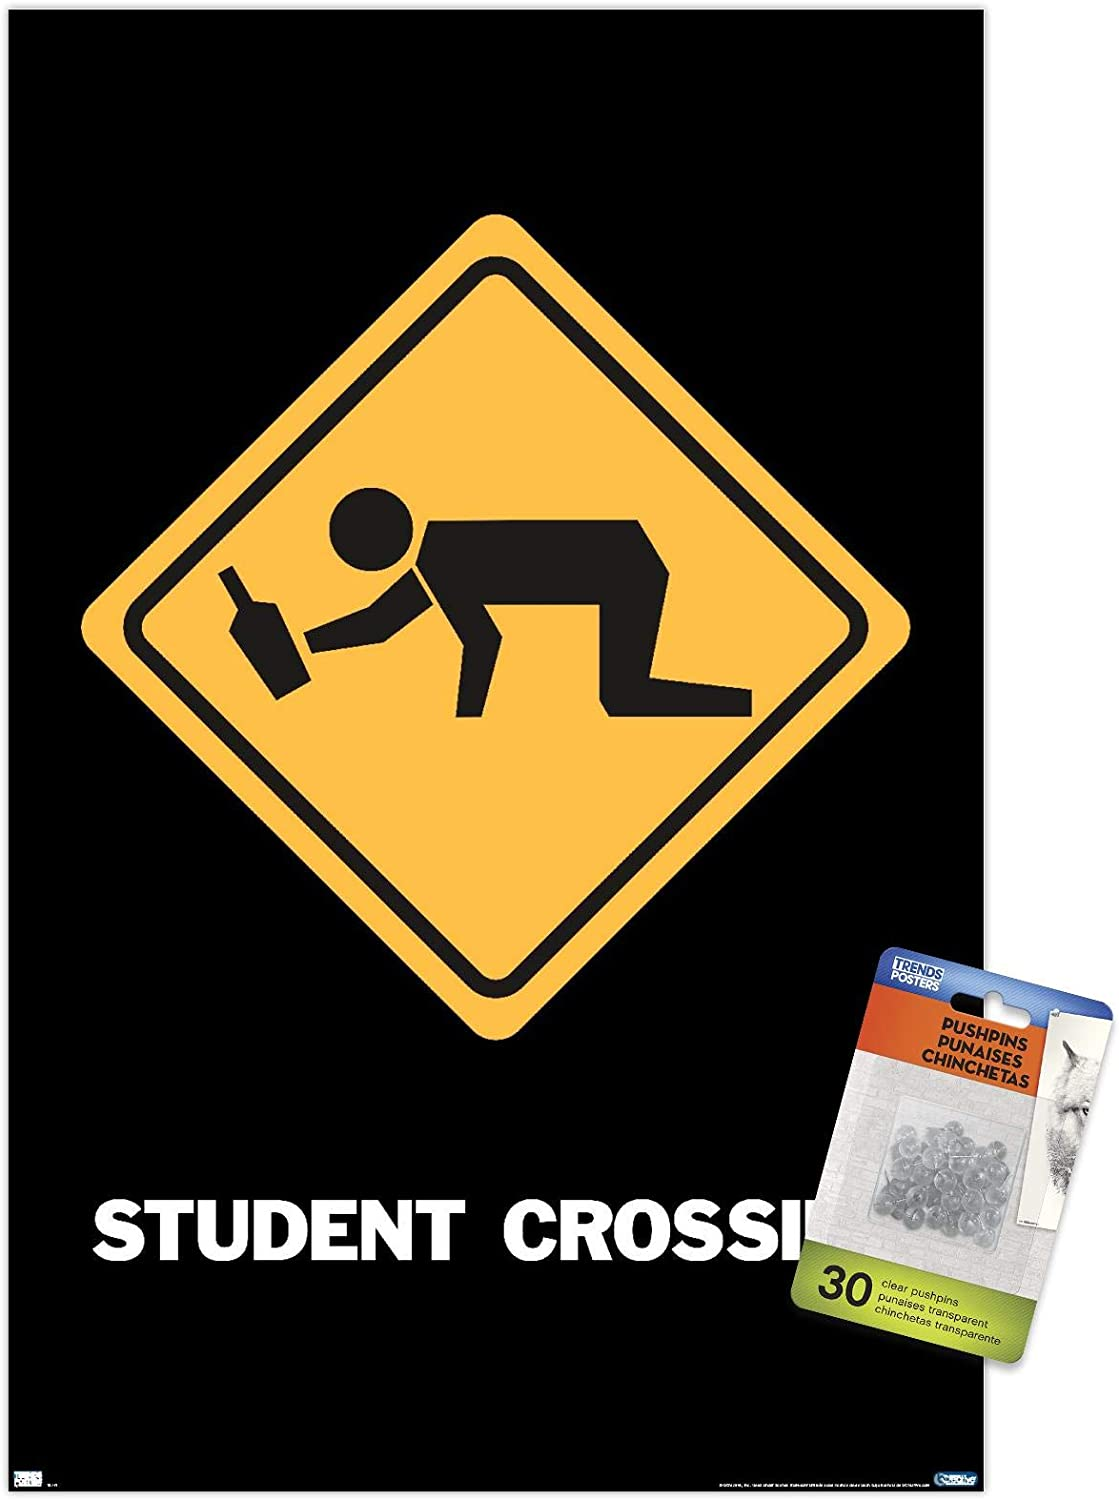 Student Crossing Wall Poster with Push Pins Sacramento Mall Bargain